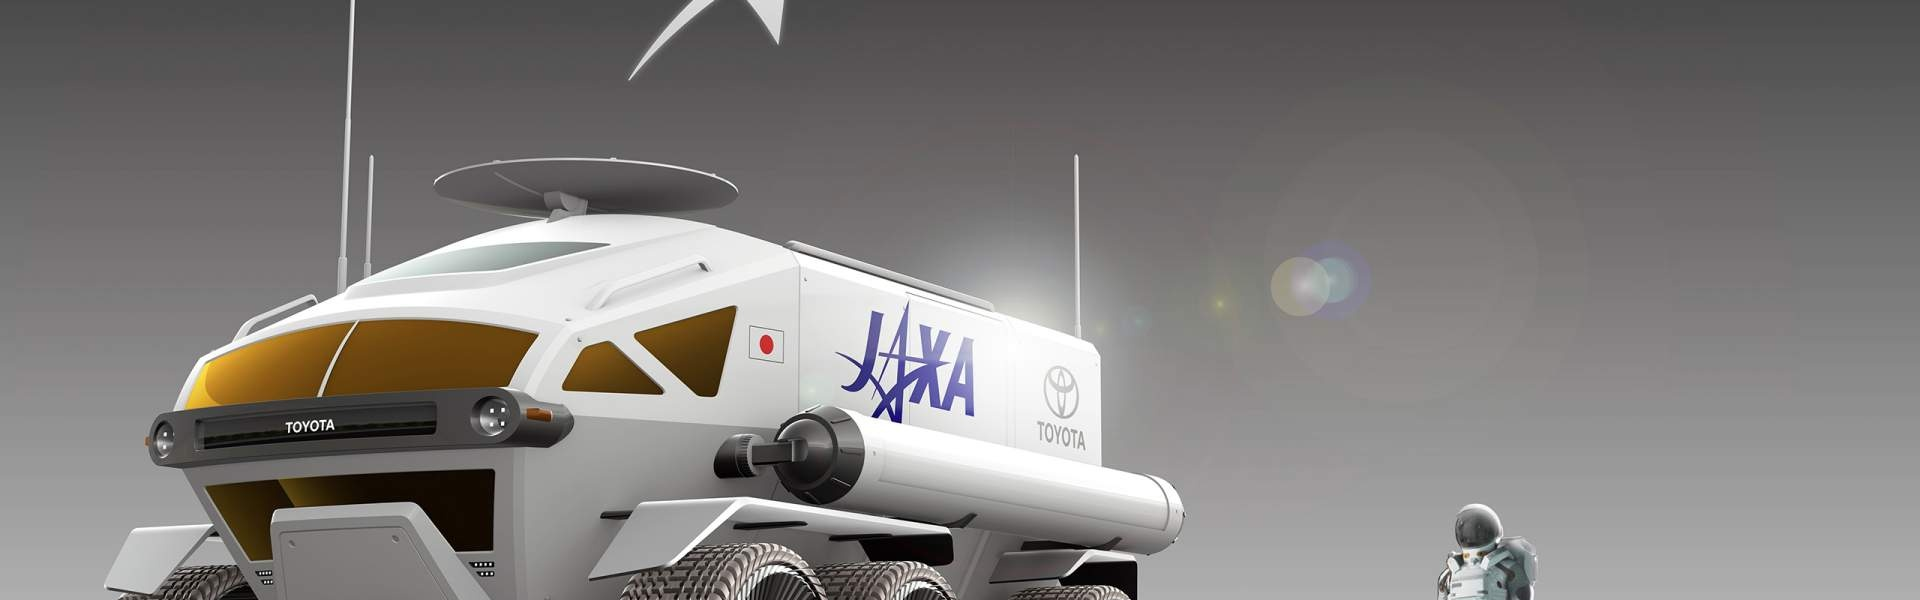 toyota-fuel-cell-electric-lunar-rover-project-7.jpg